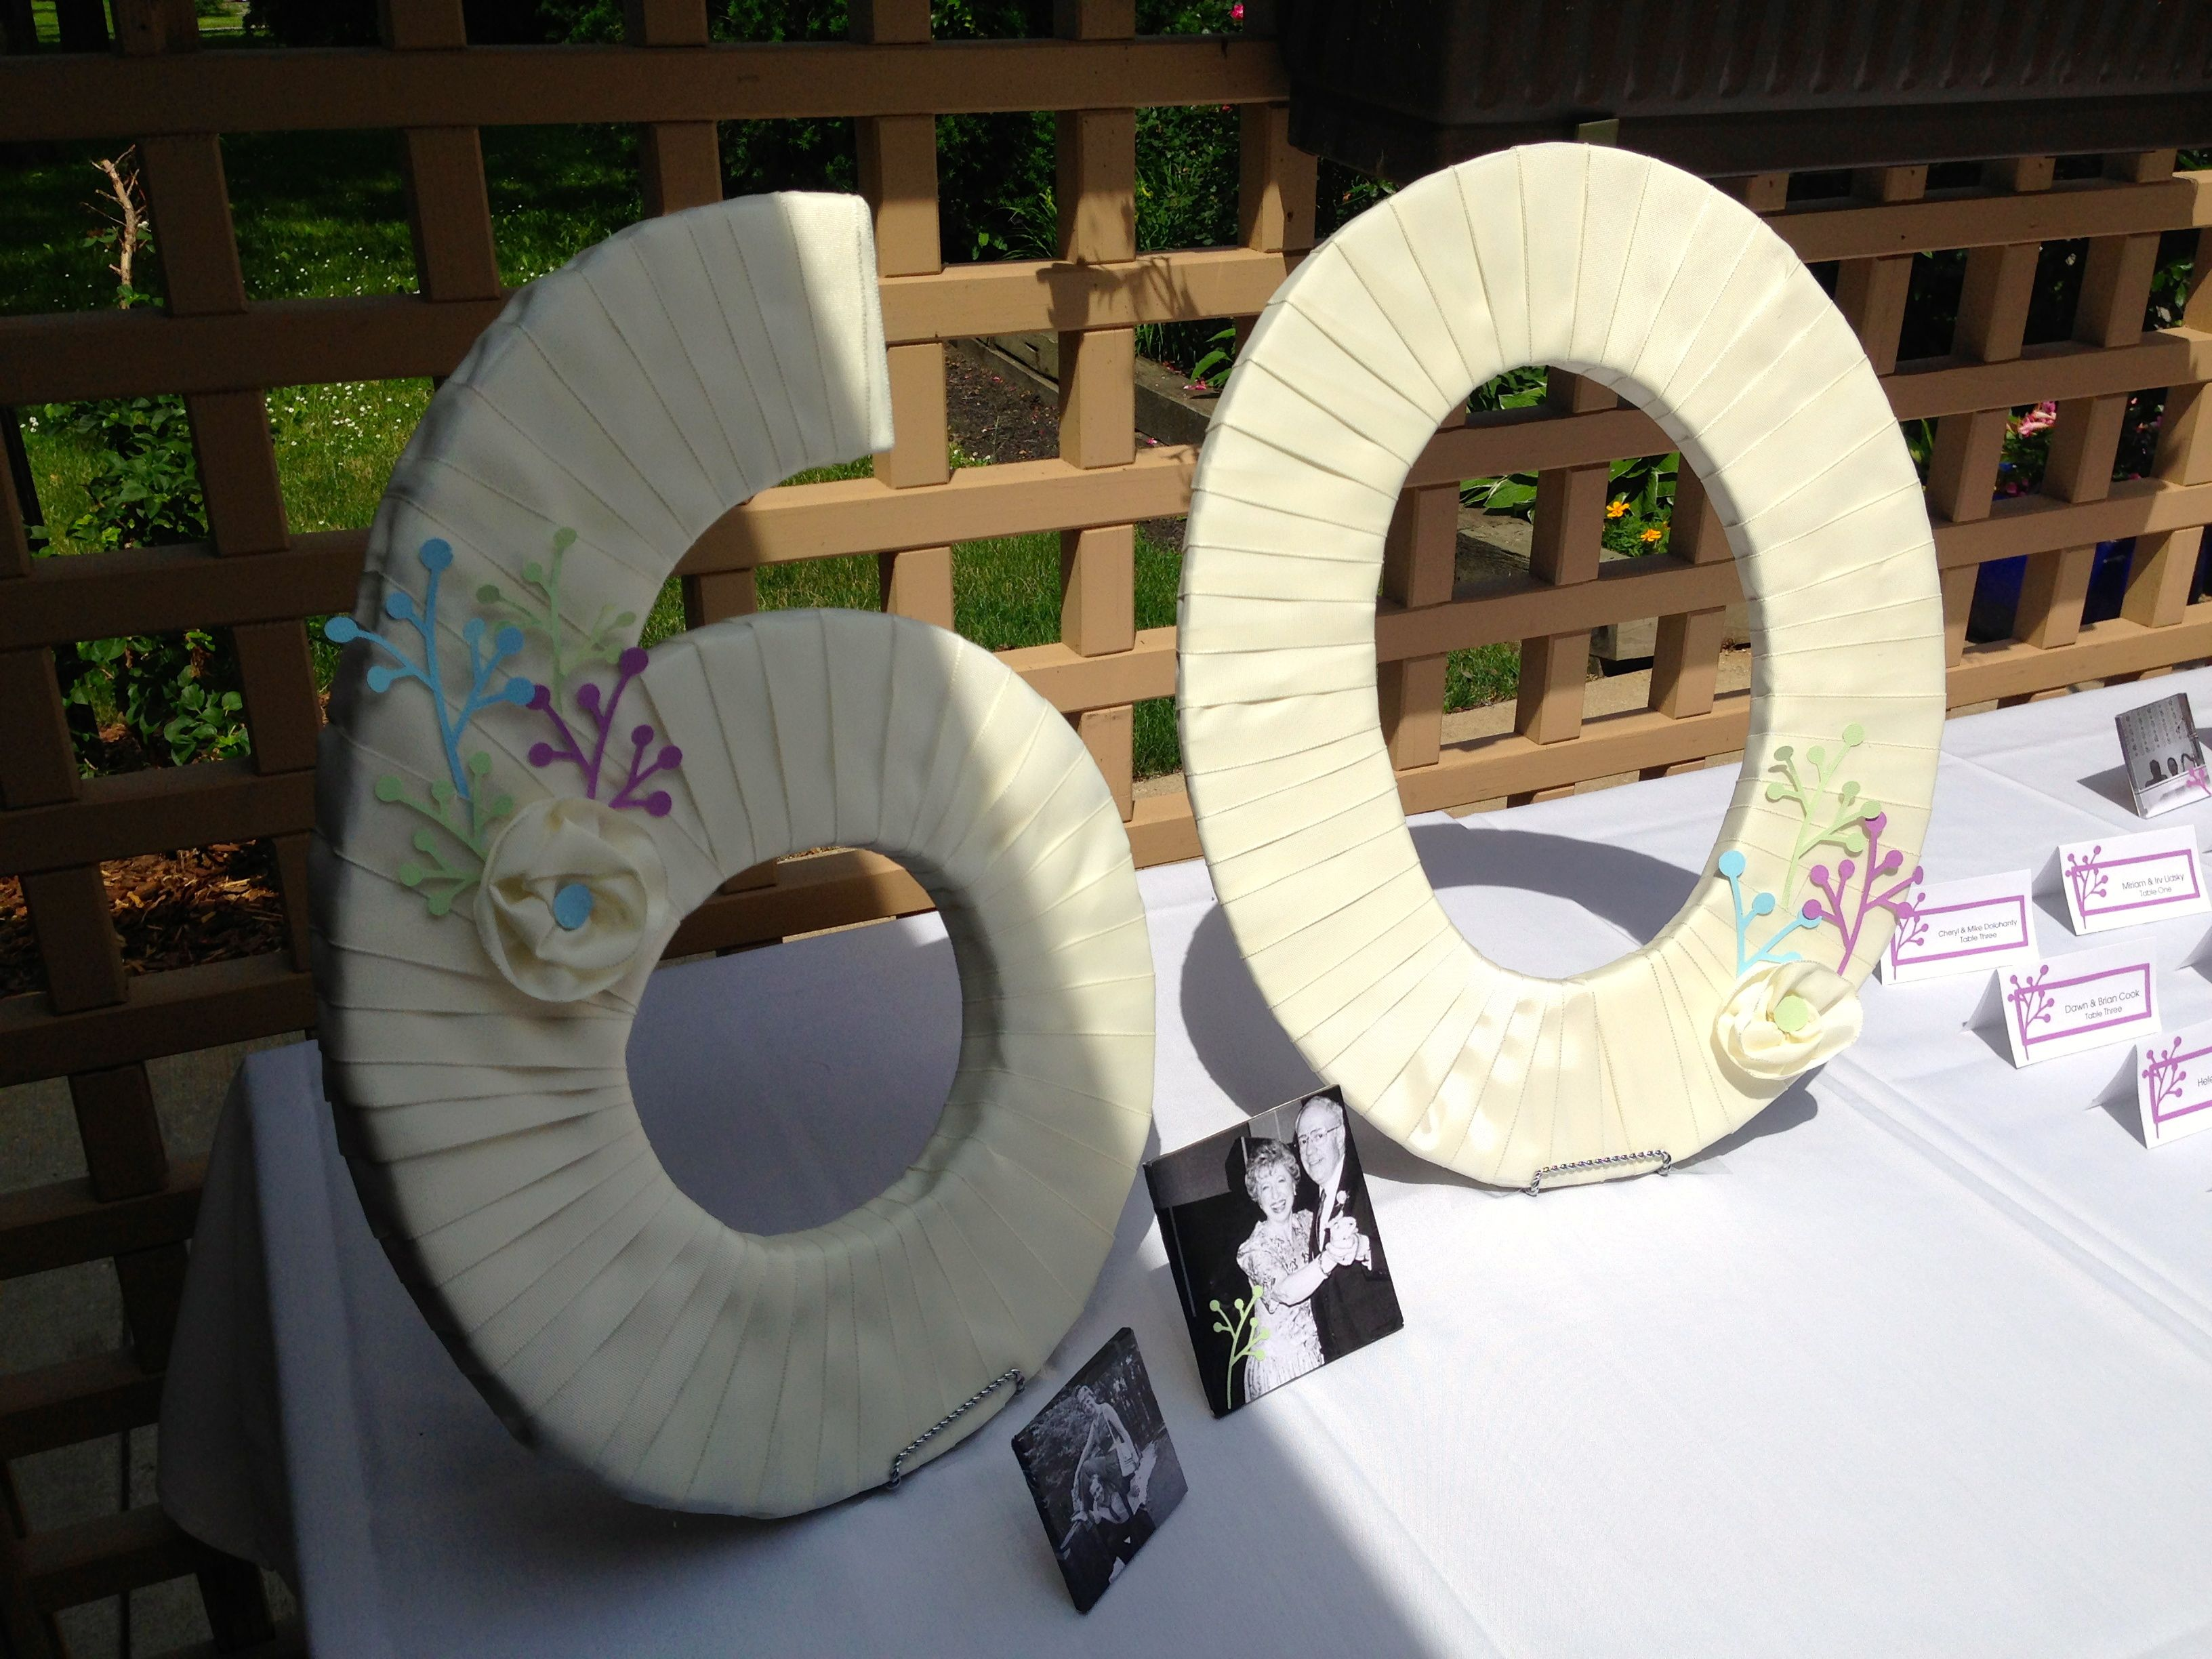 Diy wednesday 60th anniversary party 60th anniversary for 60th wedding anniversary decoration ideas